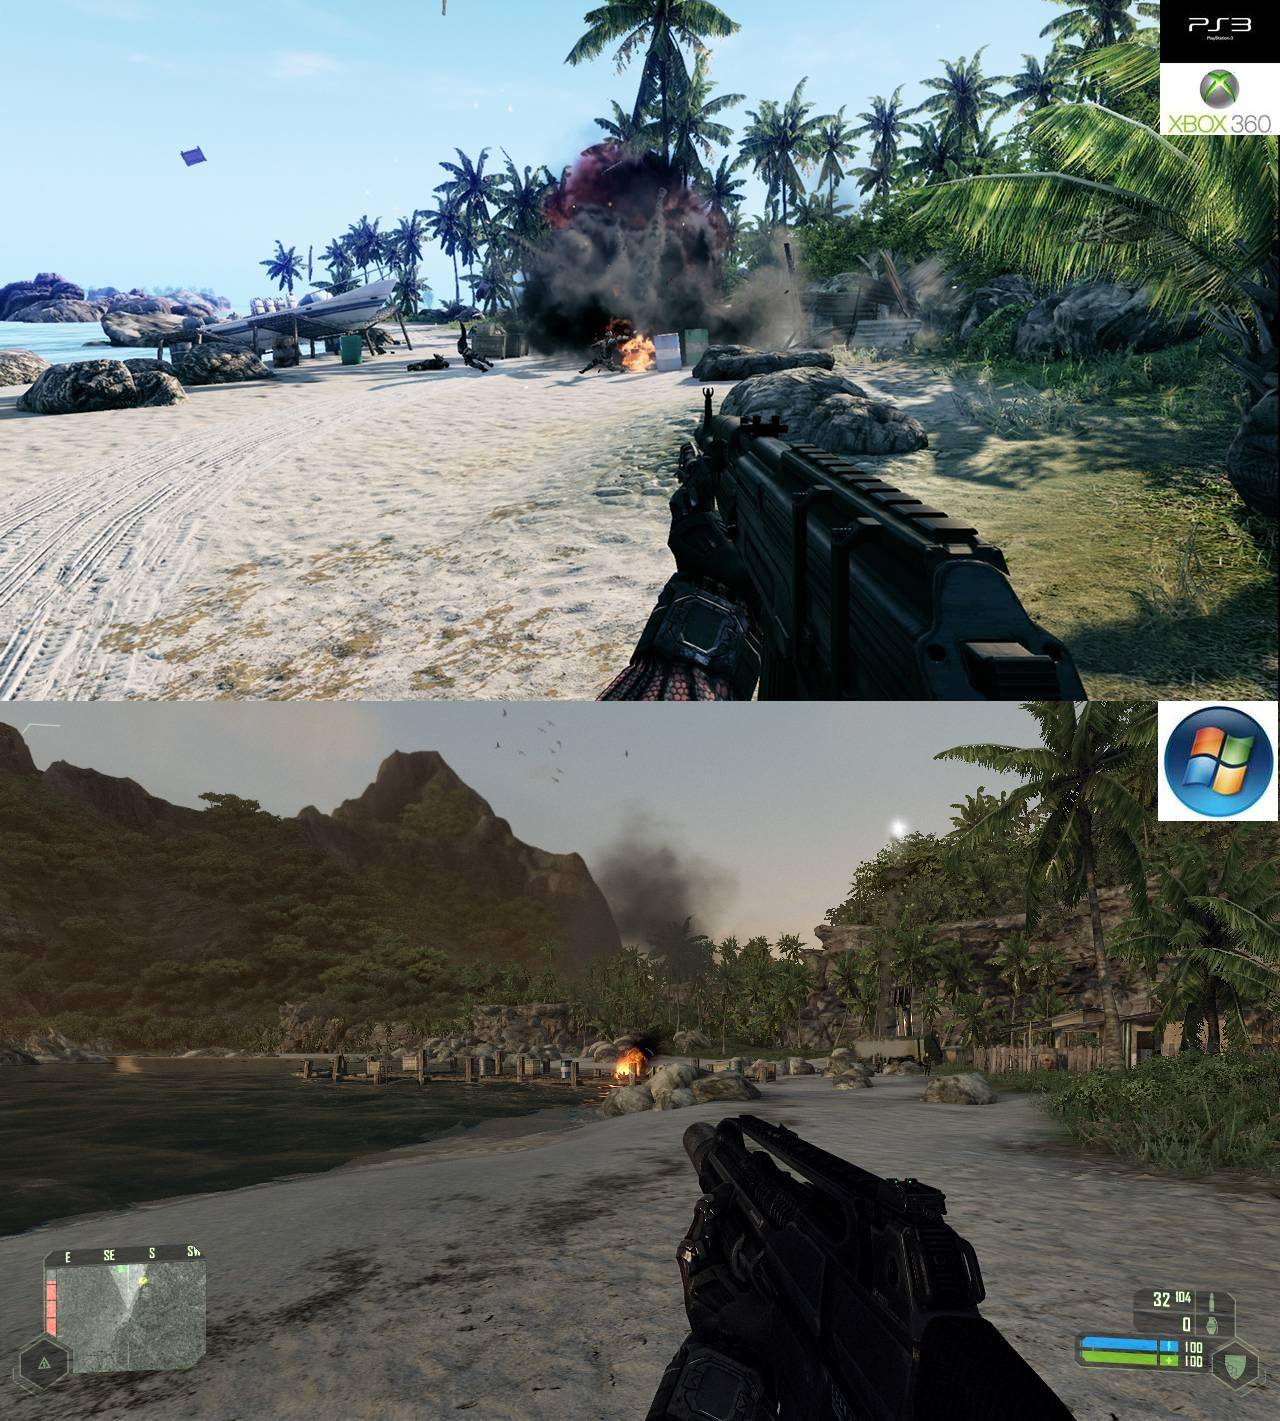 Crysis Console Vs PC Comparison Which Version Looks Better